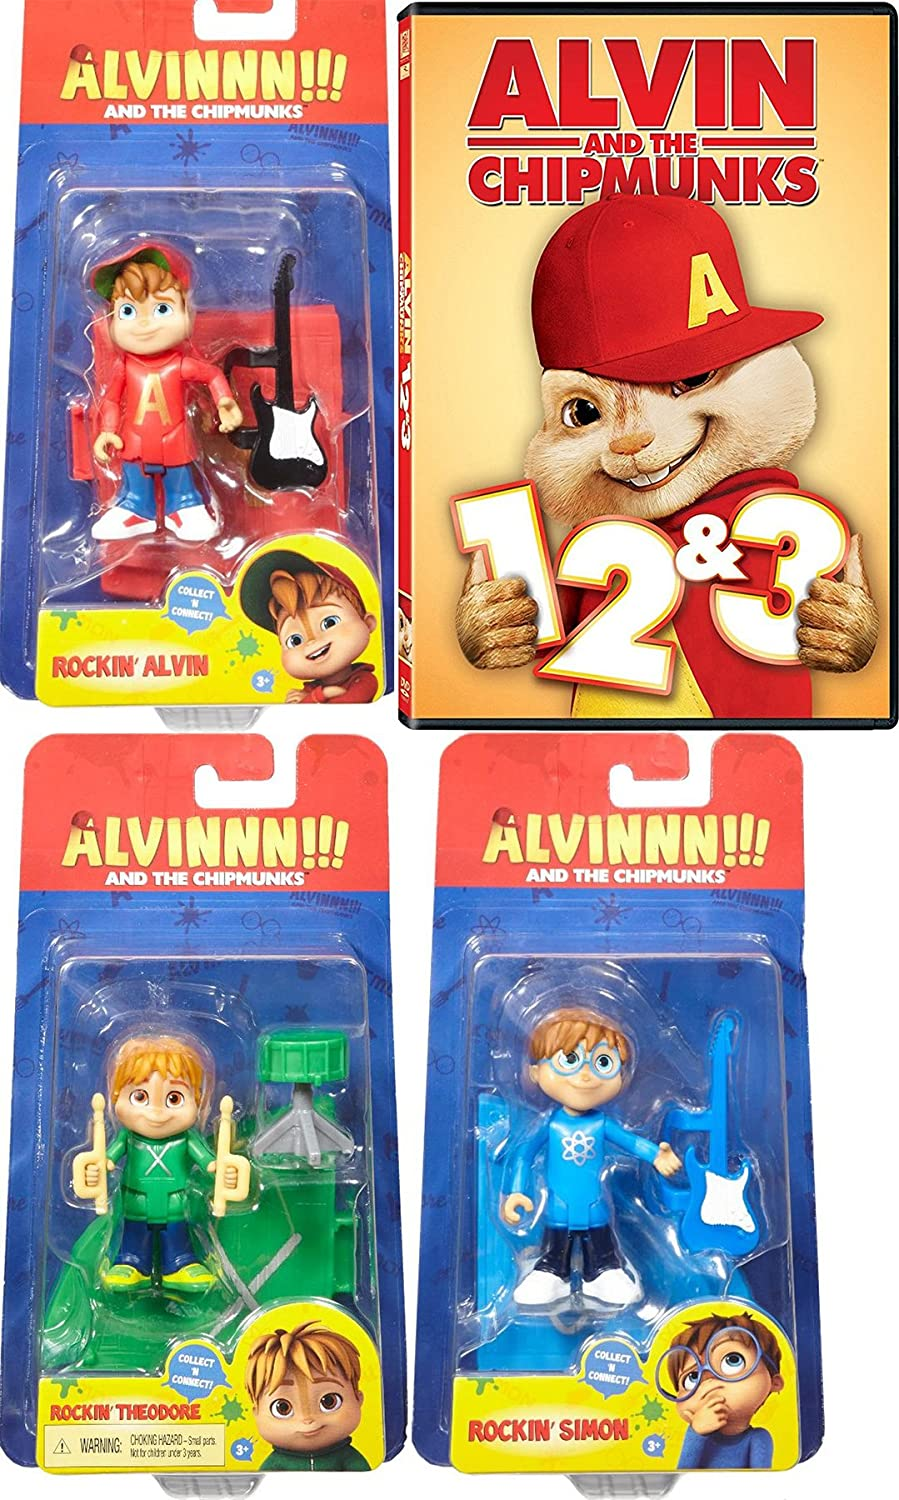 Amazon Com Rockin Alvin Simon Theodore The Chipmunks Figure Movie Pack Dvd 1 2 3 The Squeakquel Road Chip Cartoons Awesome Animated Set Cody Cameron Kris Pearn Jason Lee Walt Becker Movies